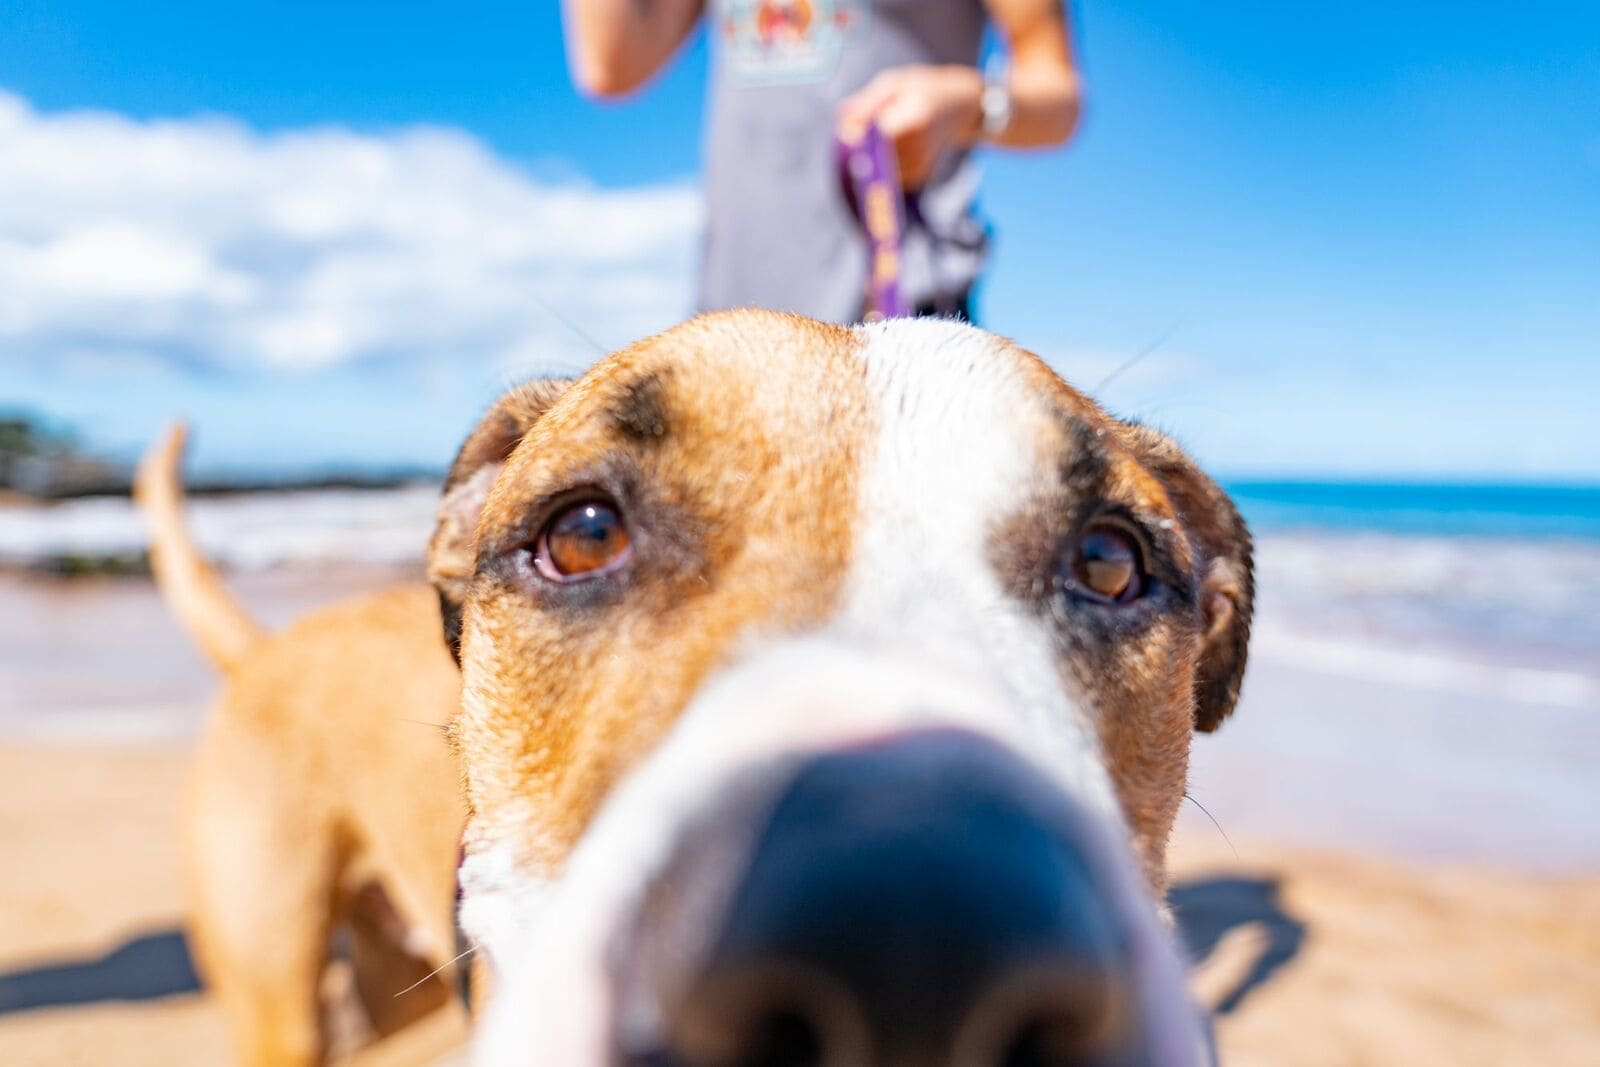 Closeup of a dogs face on the beach